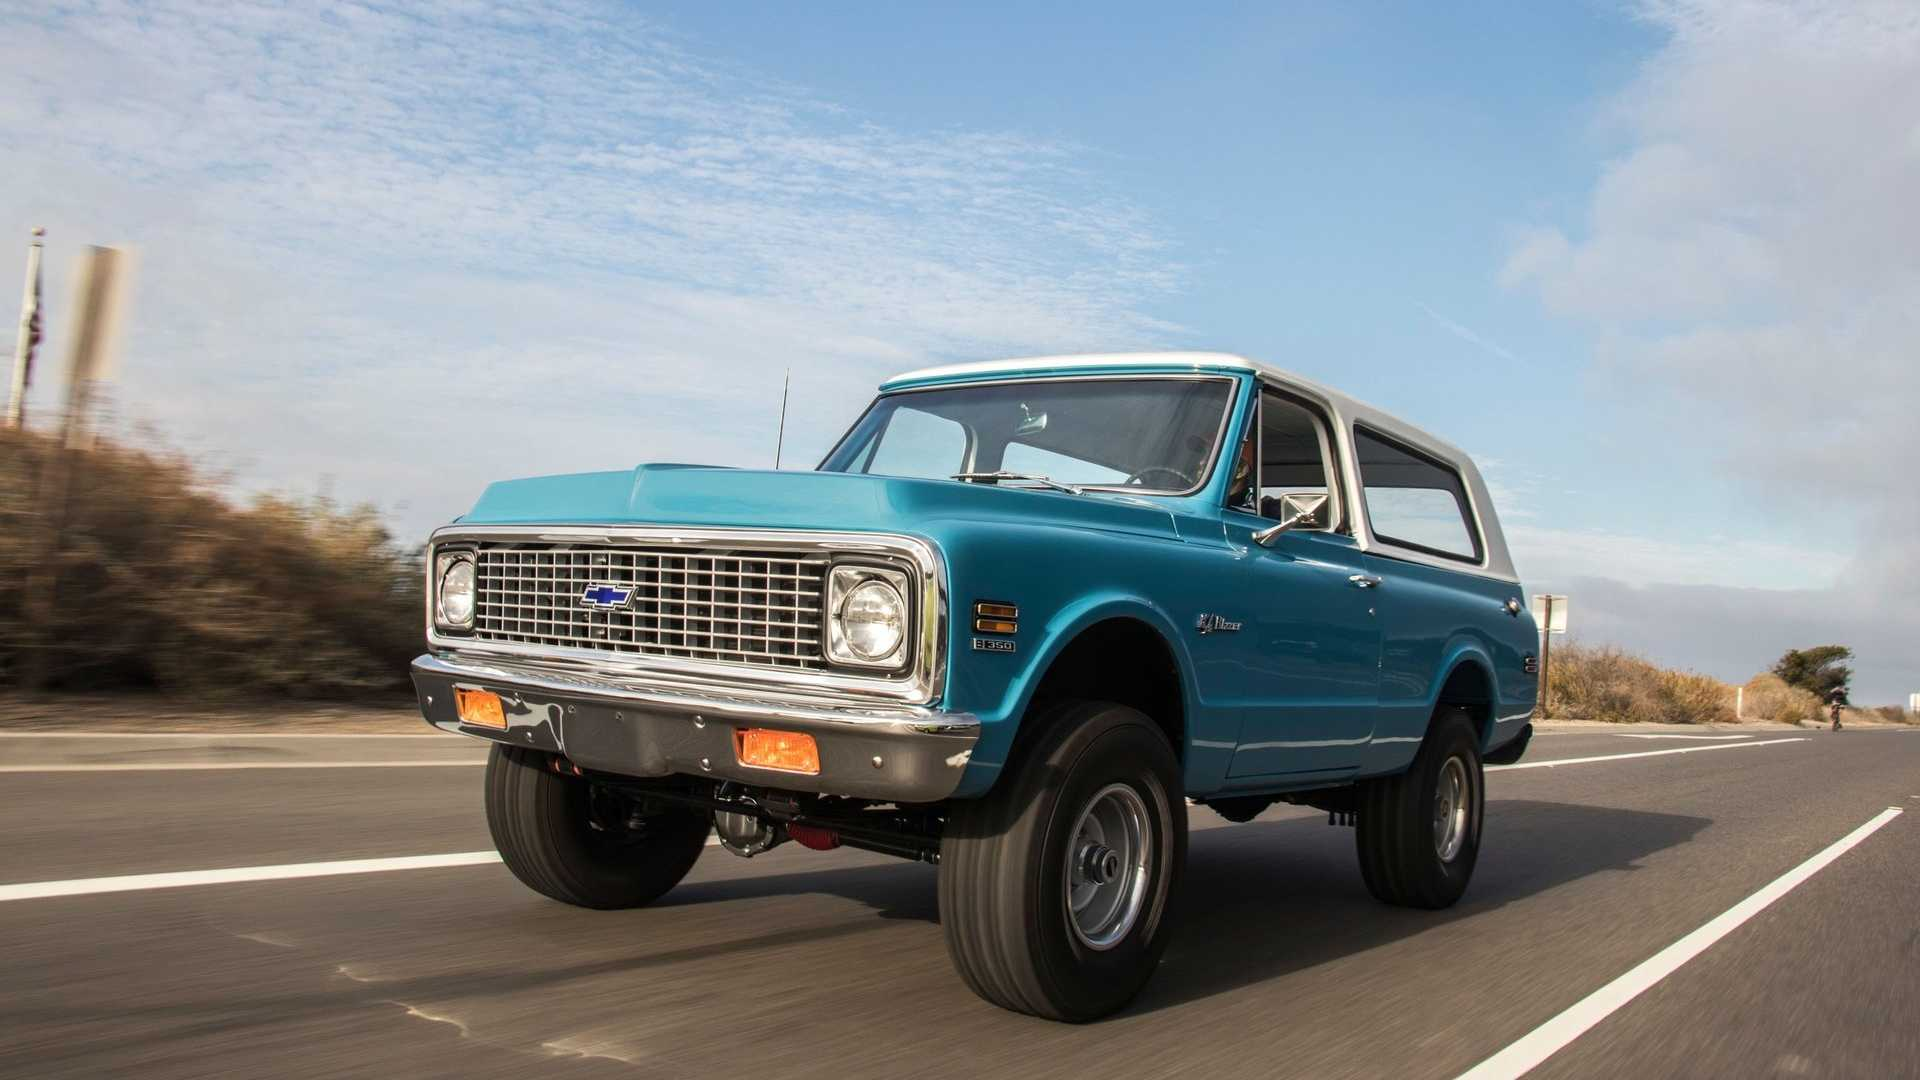 Ride Out In This Restored 1971 Chevy K5 Blazer | Motorious